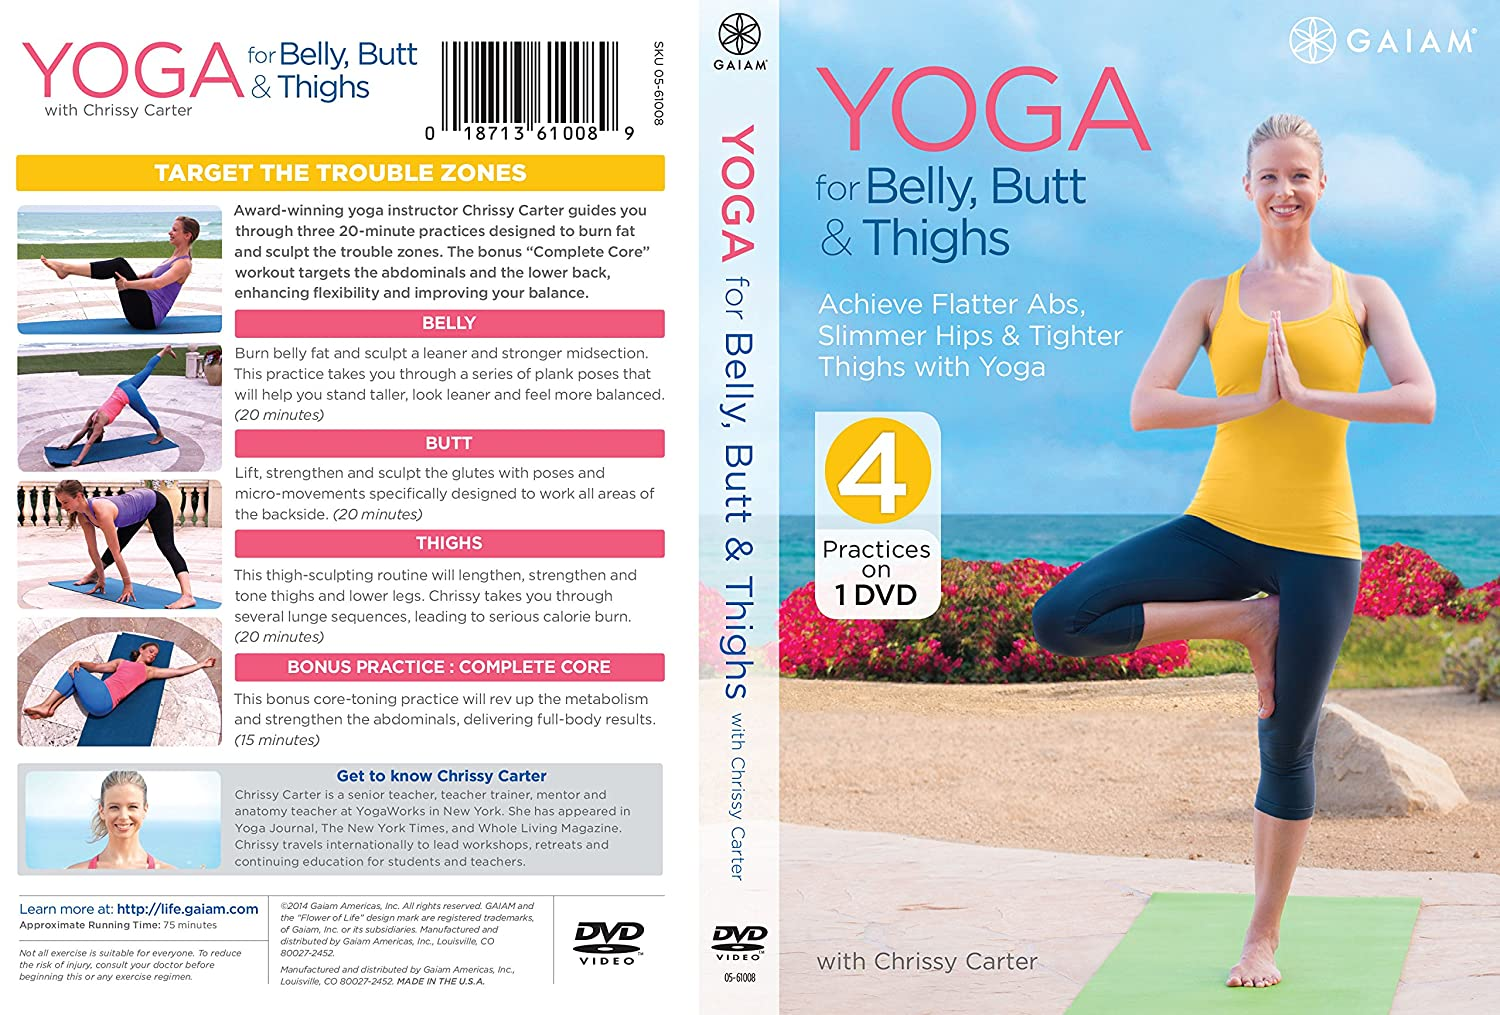 Amazon.com: Yoga For Belly, Butt & Thighs: Chrissy Carter, Gaiam ...